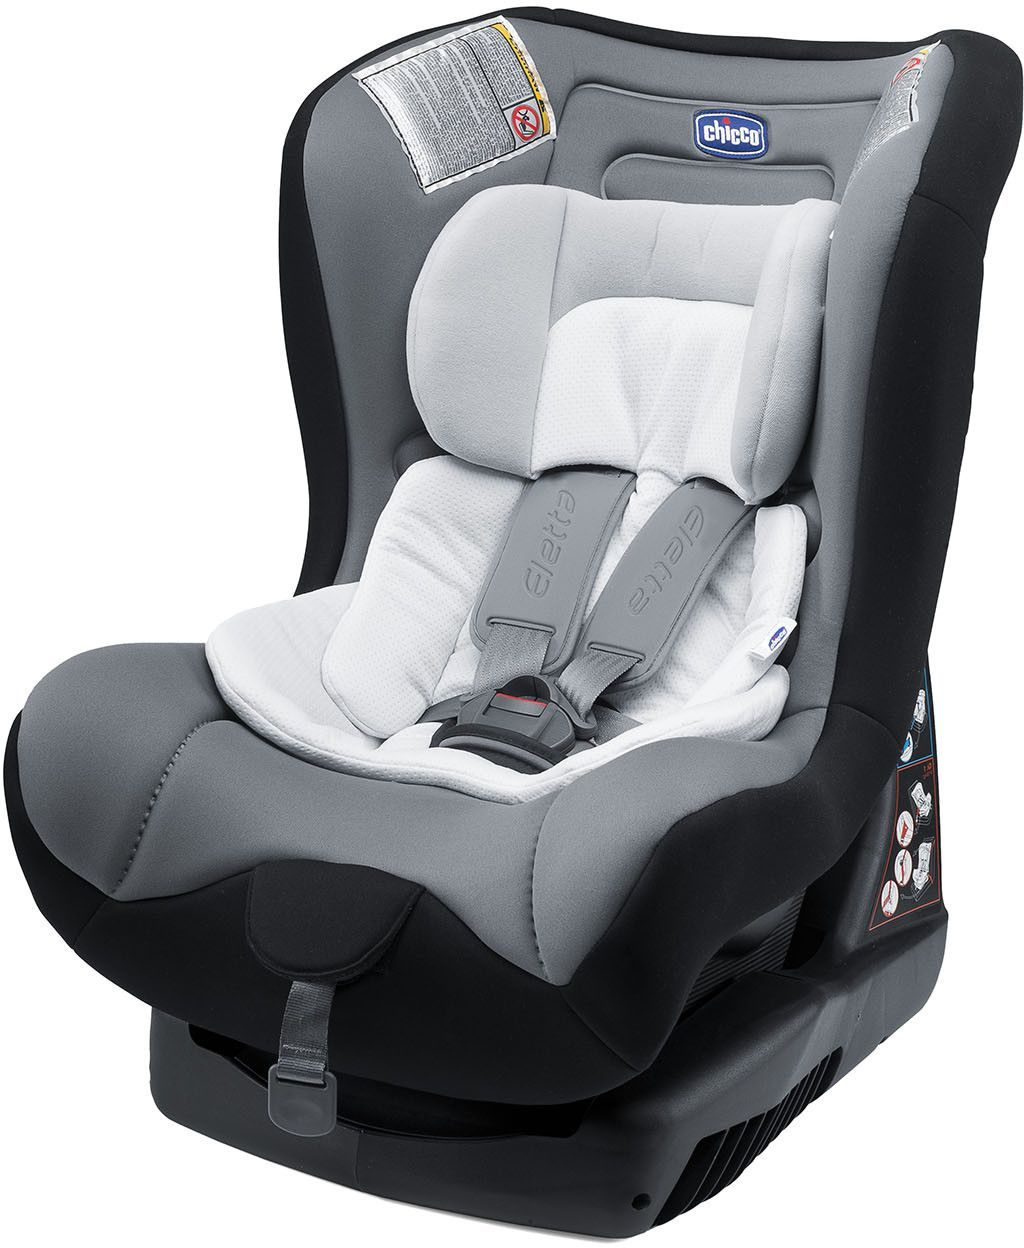 6006  Chicco Booster Eletta Baby Car Seat Original